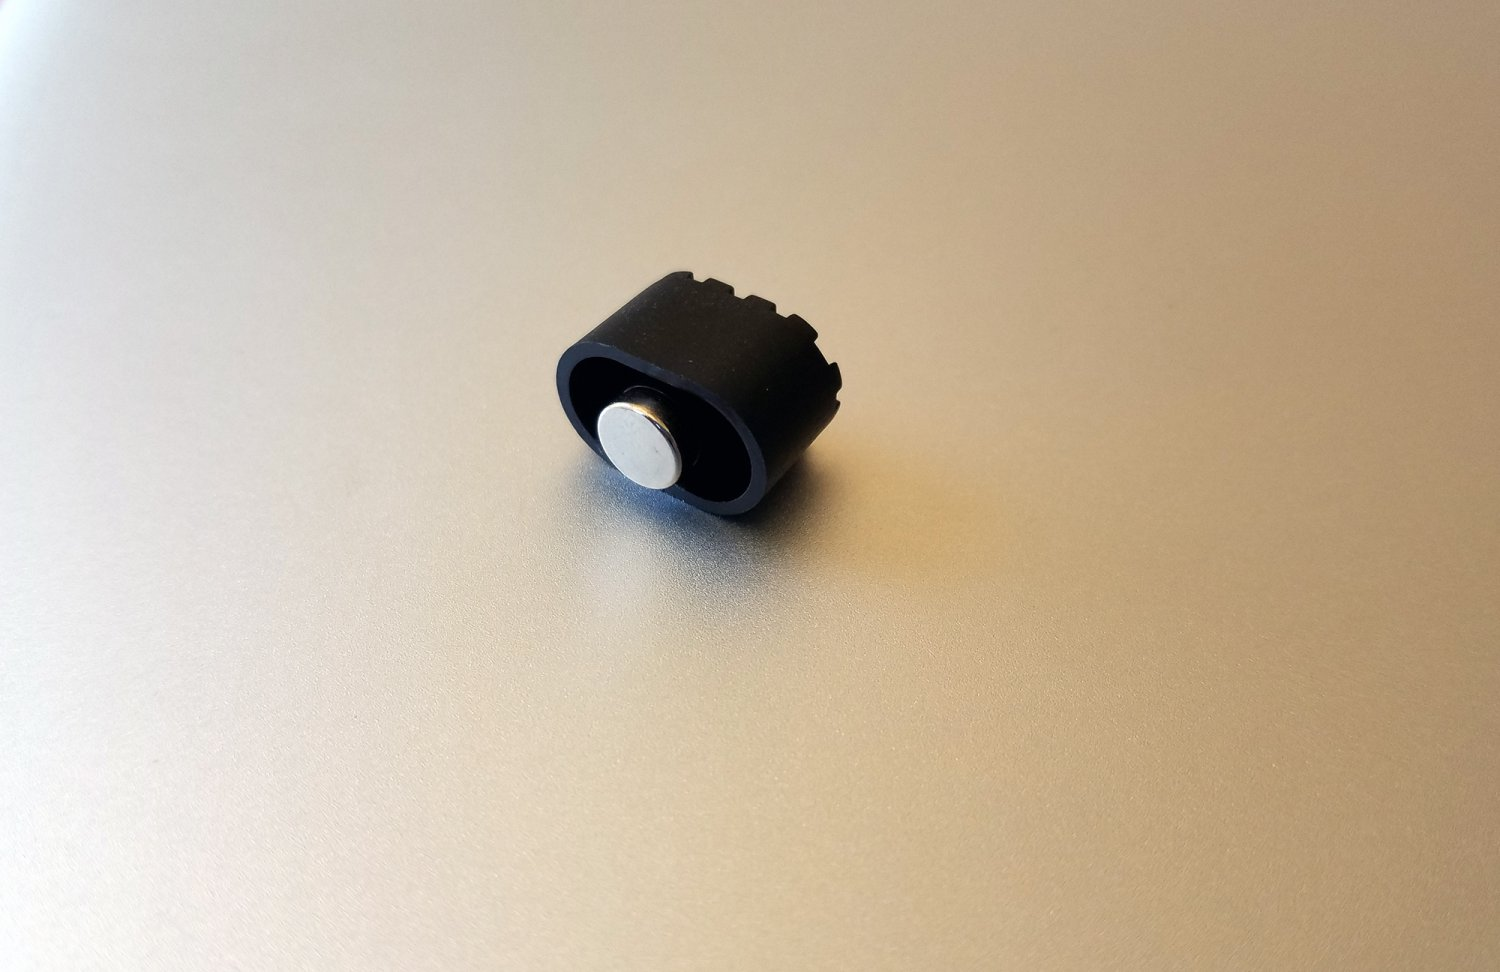 Magnetic Magazine Release Tool for Bullet Button Lock (MTO XS)